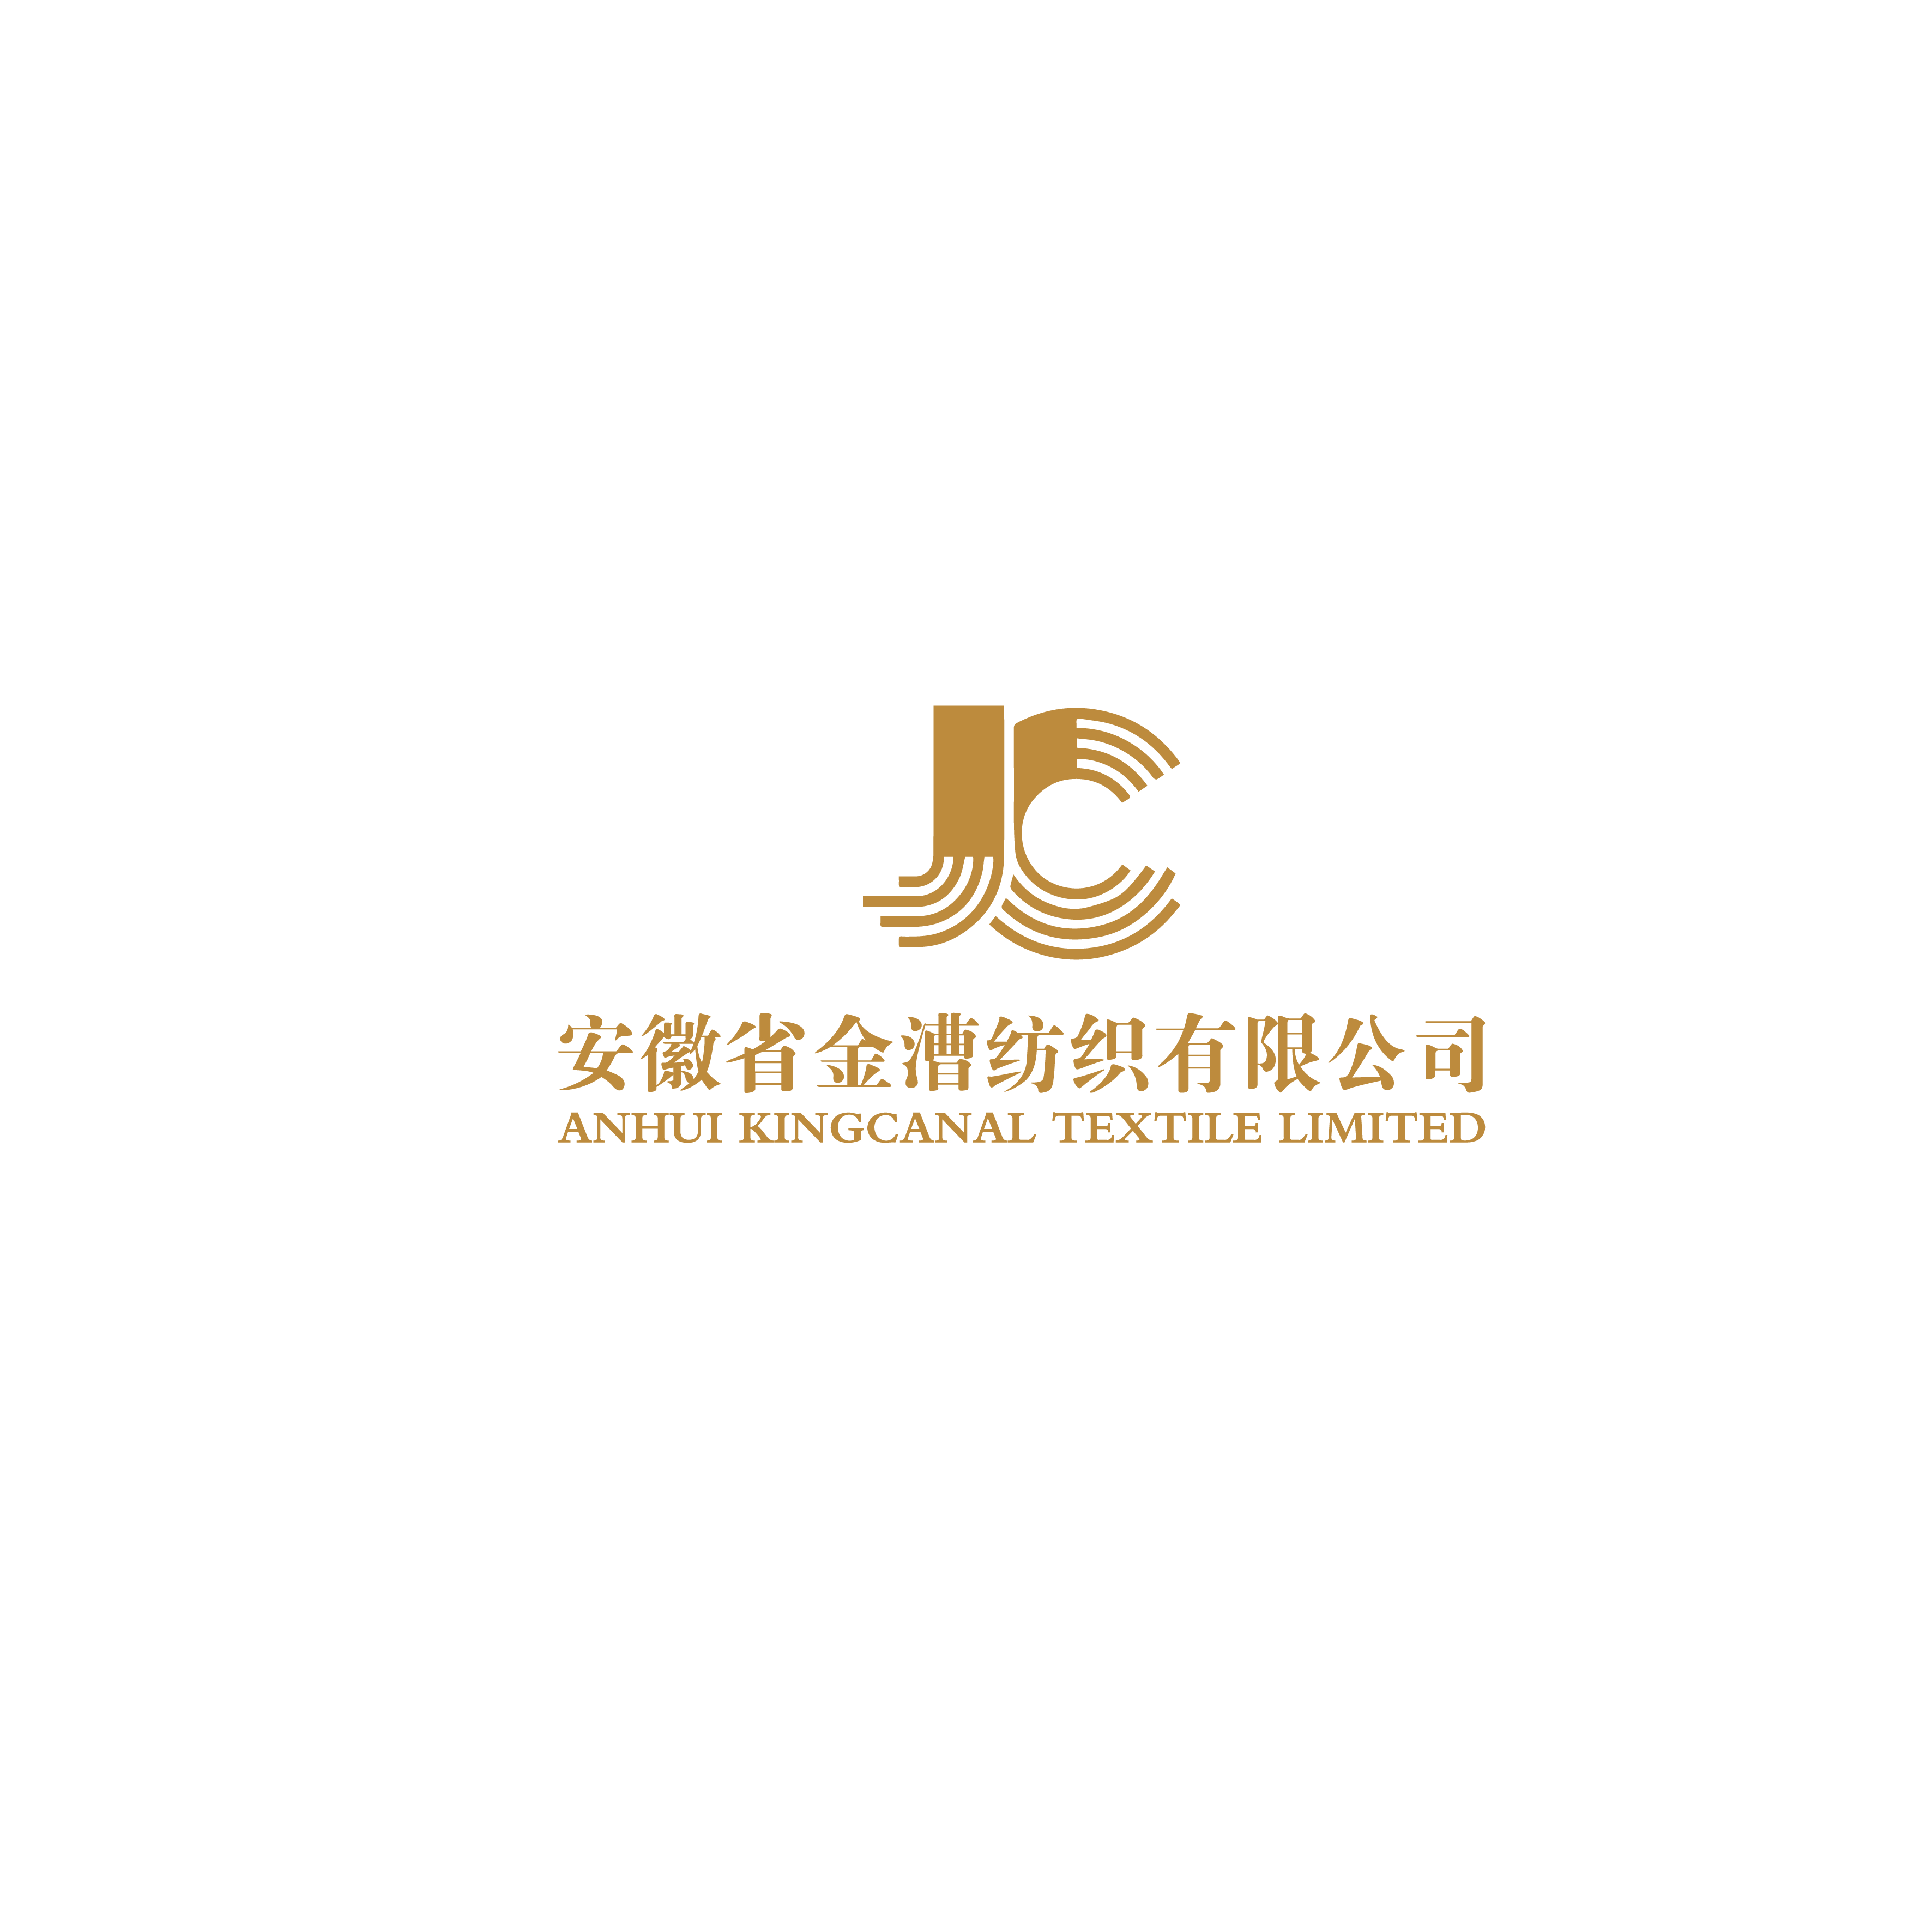 ANHUI KINGCANAL TEXTILE LIMITED